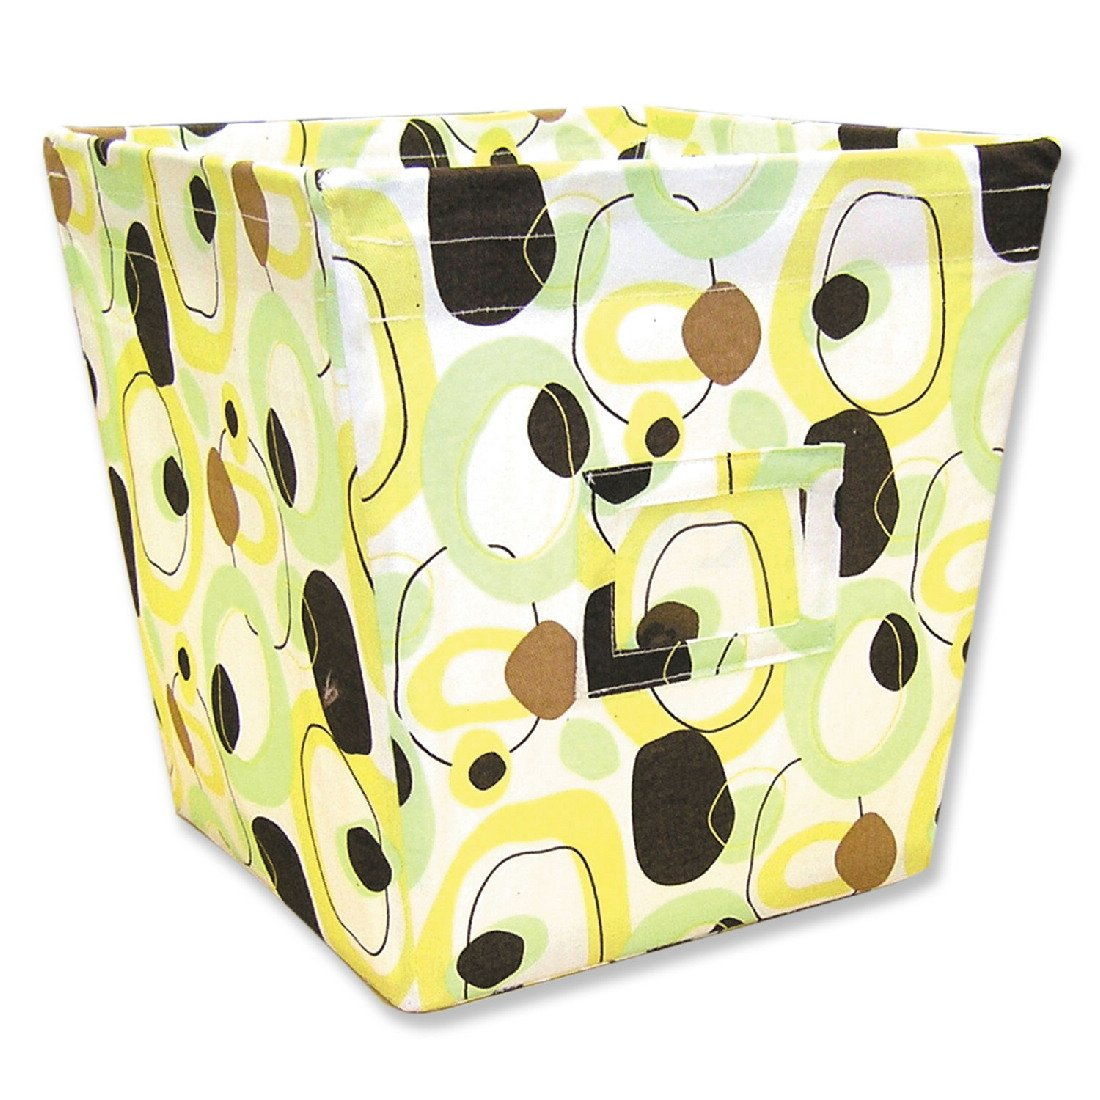 Trend Lab Fabric Storage Bin, Gigi Print, Large 101560